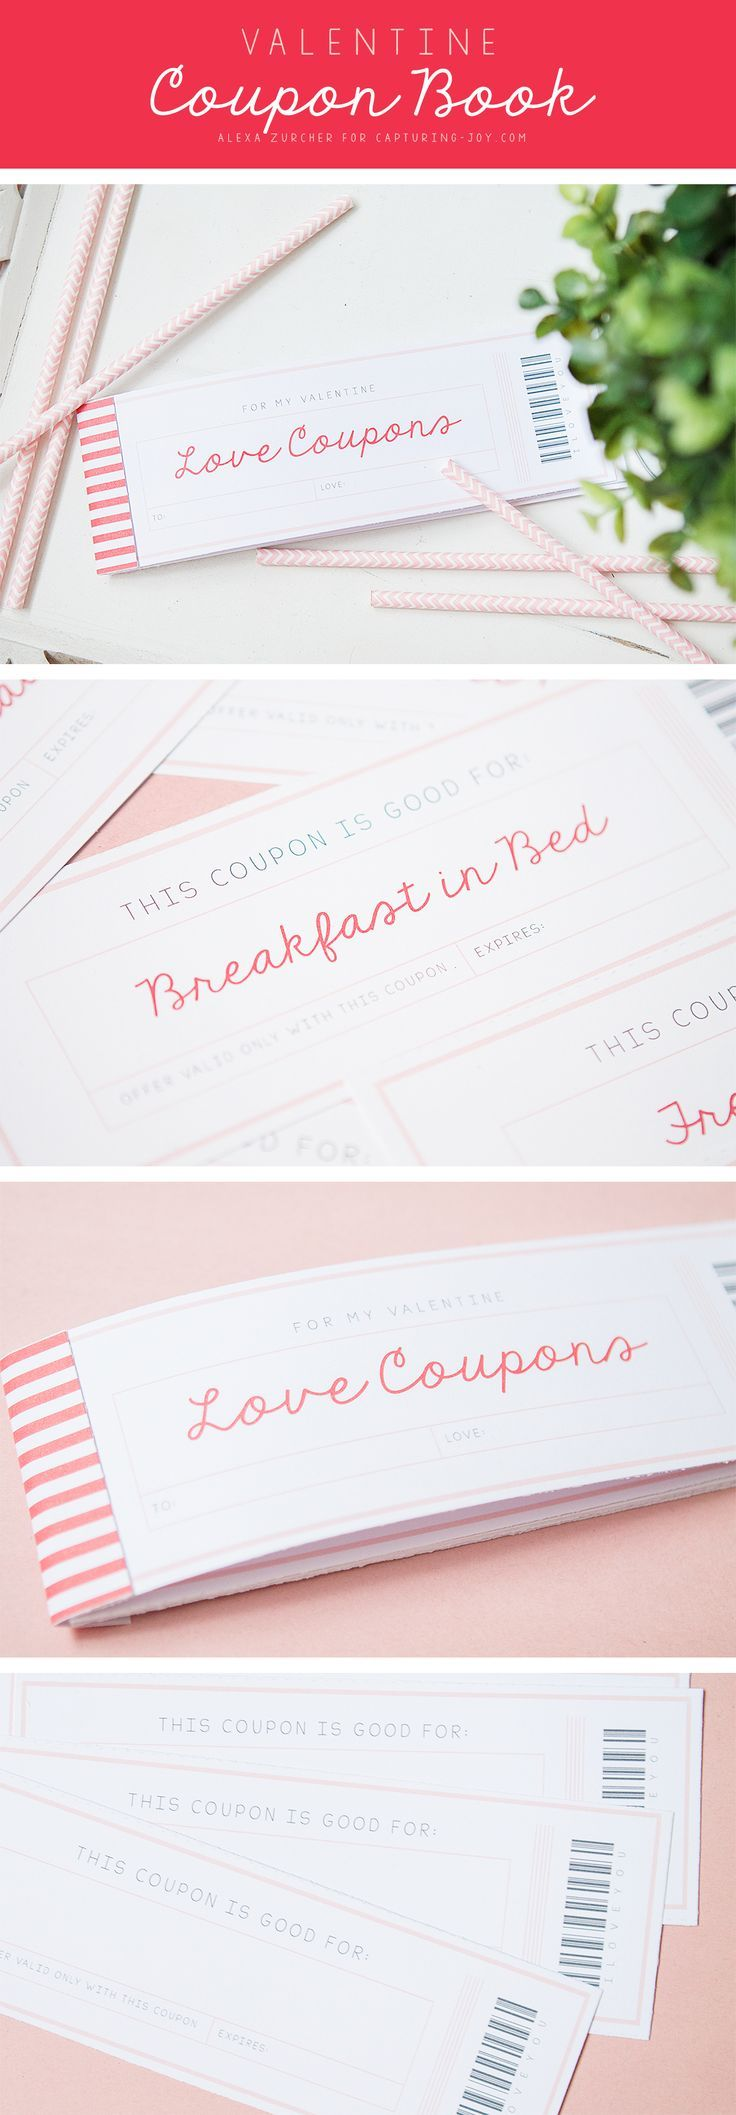 Valentine Coupon Book Printable 49 best Valentine